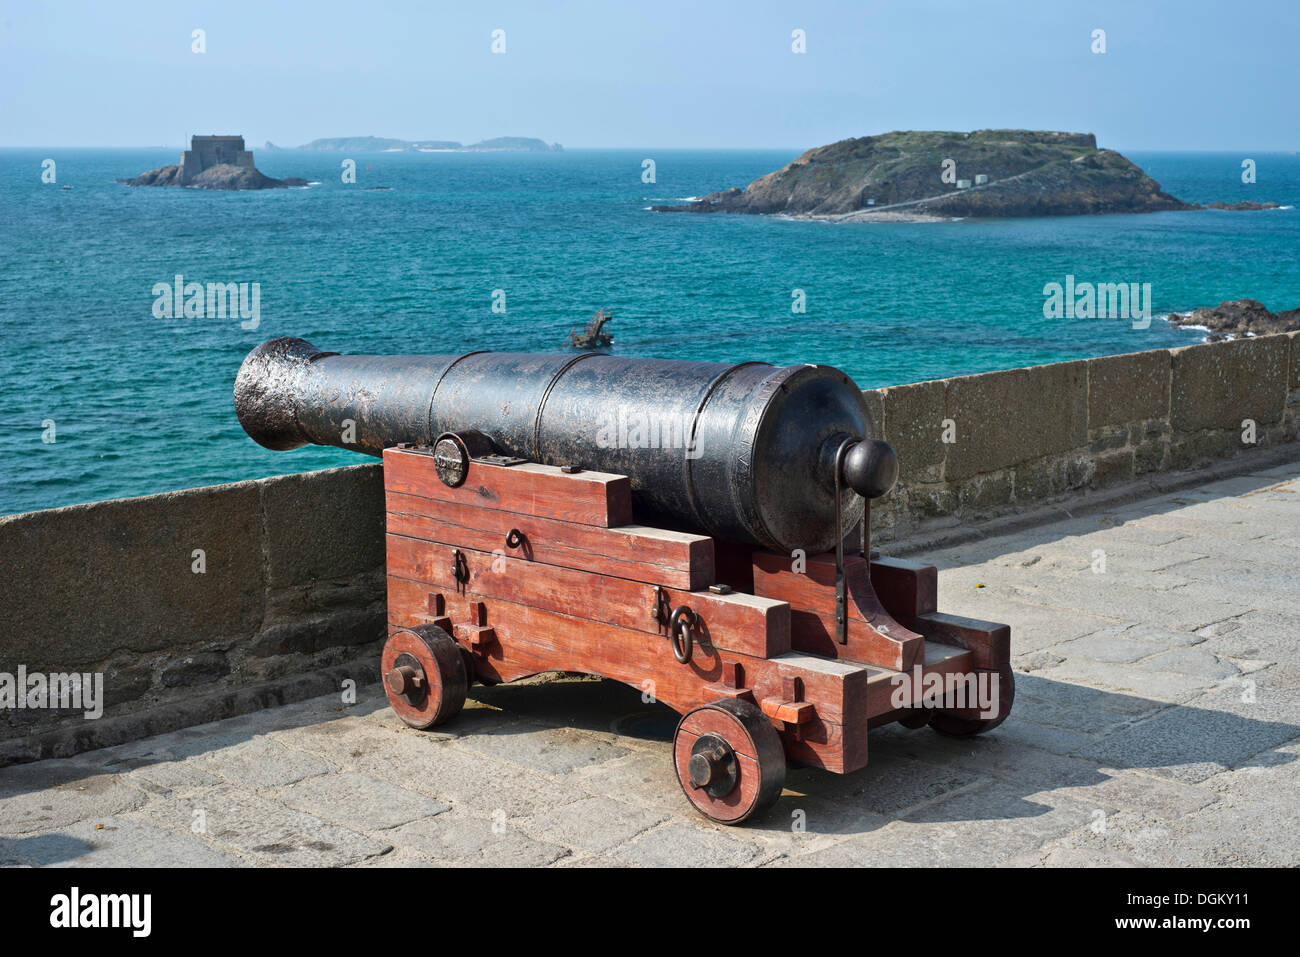 Cannon on the ramparts and offshore islands, Saint-Malo, Brittany, France, Europe - Stock Image